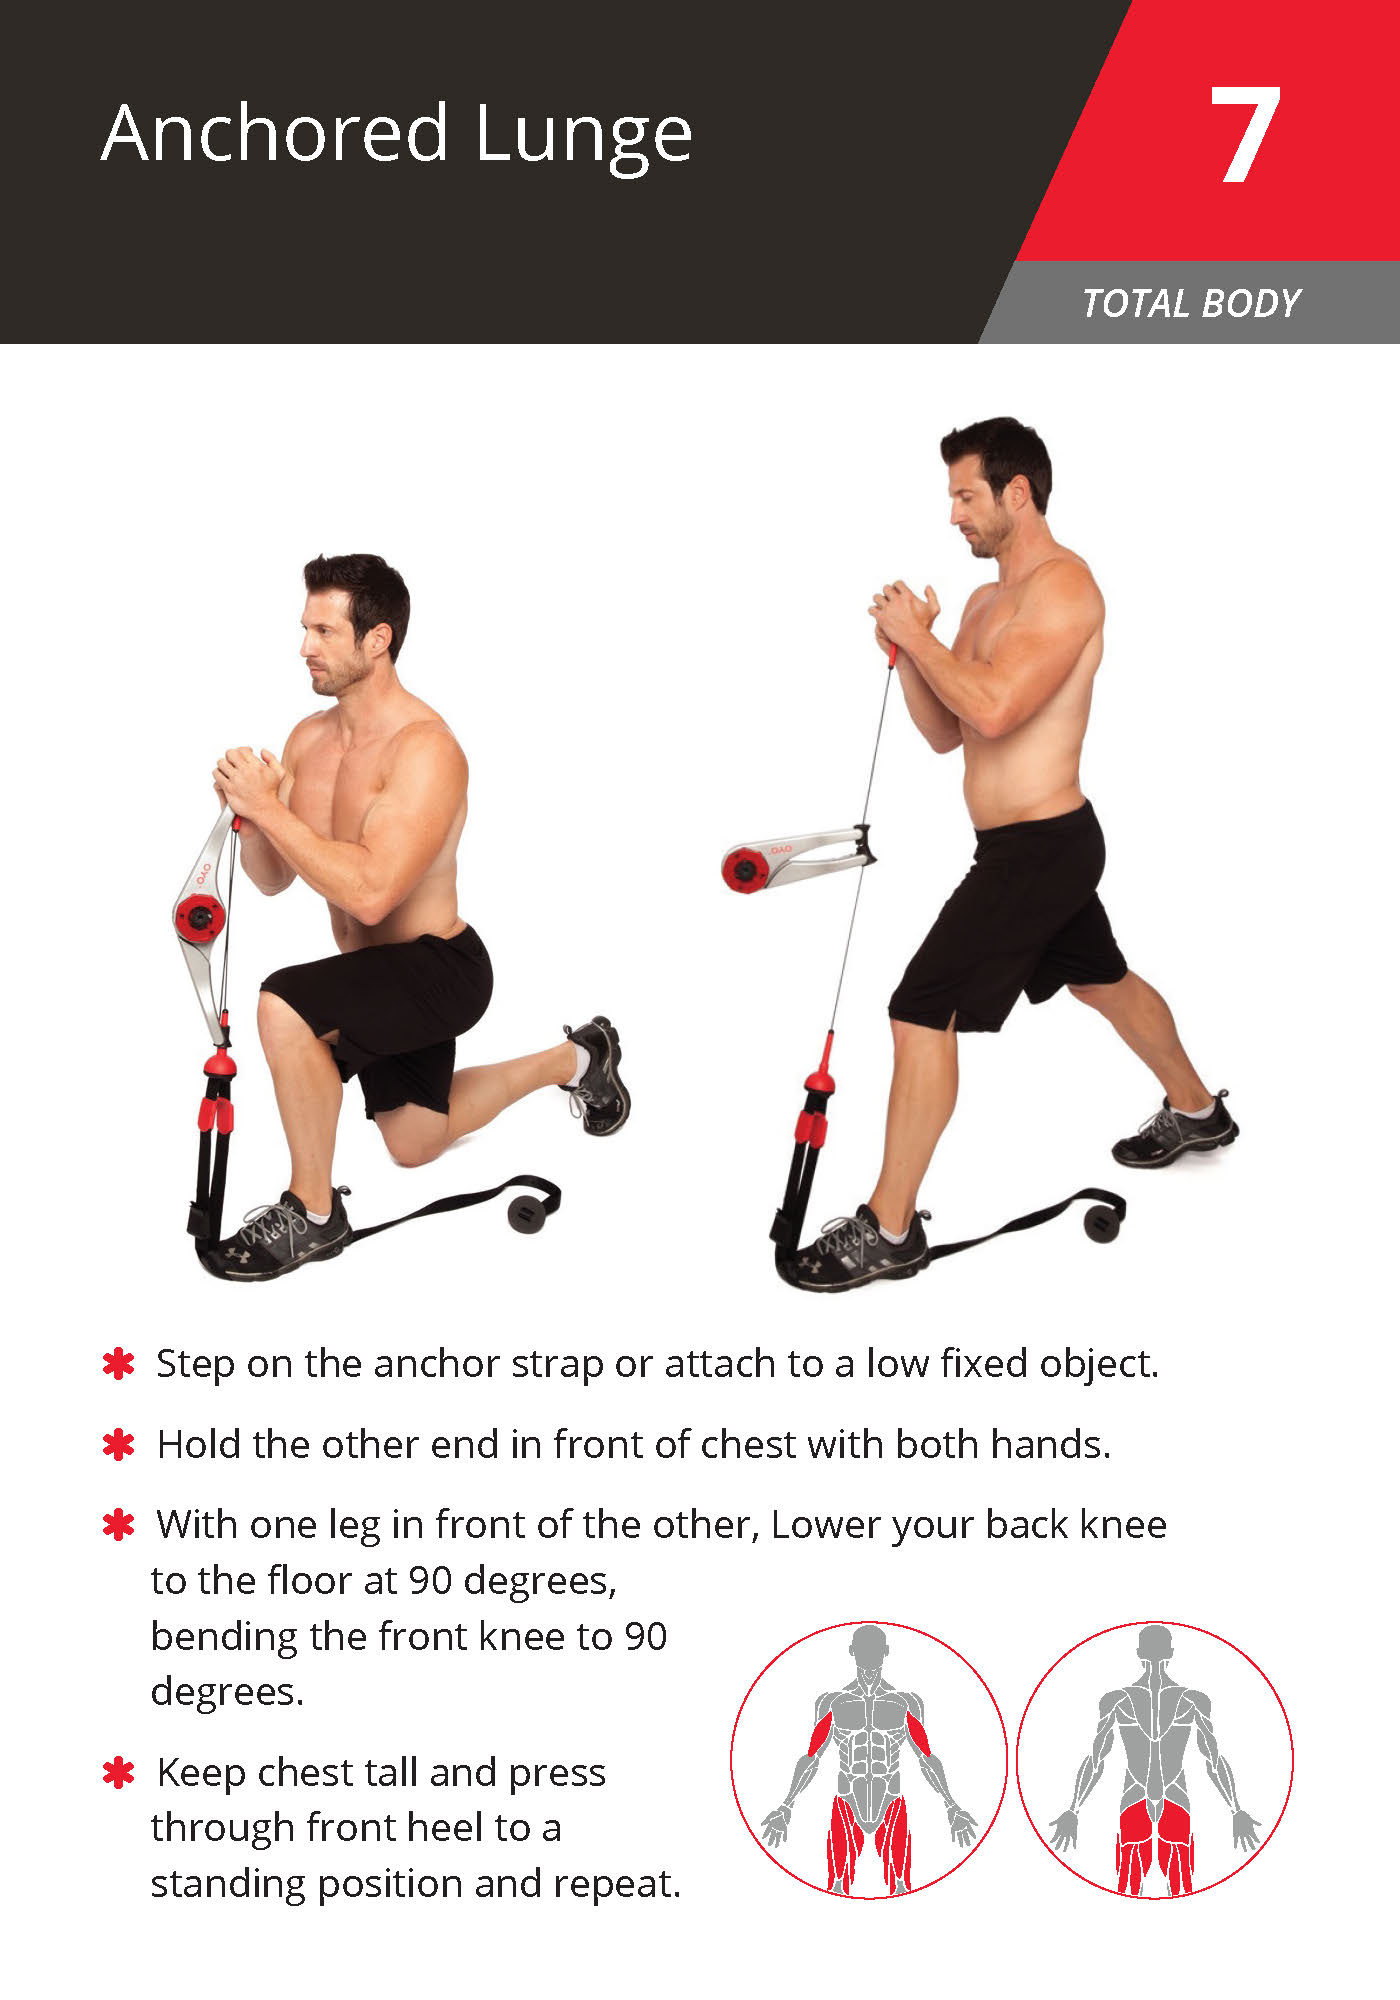 7 Anchored Lunge